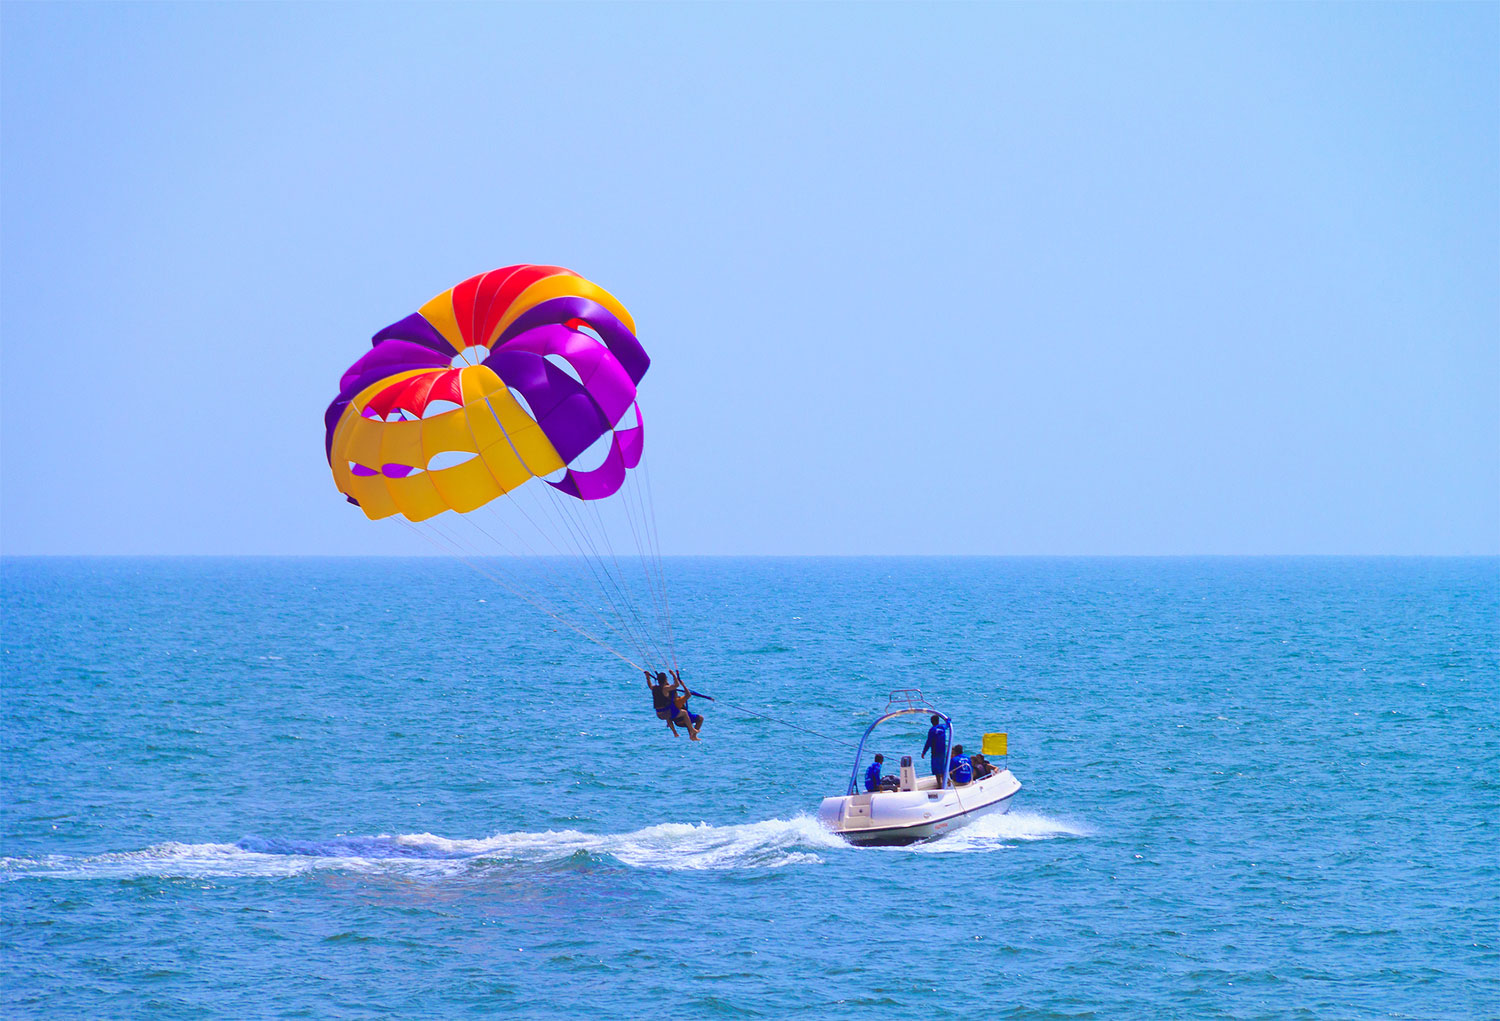 Parasailing at Candolim Beach in Goa, India